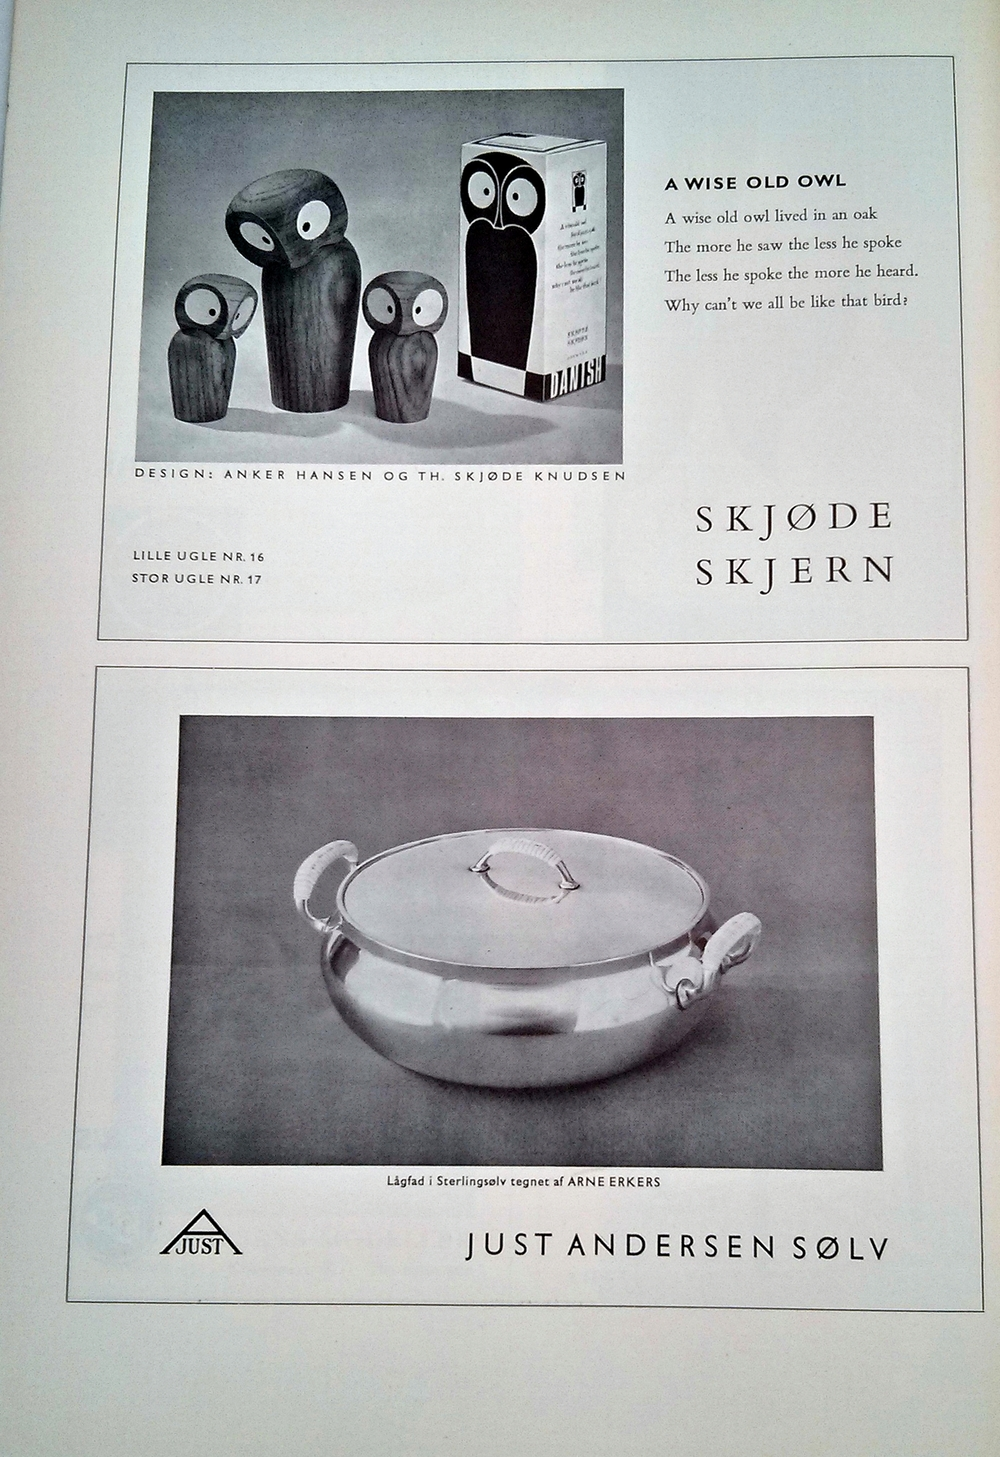 "A few old advertisements for both Just Andersen, featuring one of their beautiful pots. The Skjode Skjern advertisement shows a few of the whimsical wooden creatures in our collection and a poem.  ""A Wise Old Owl"" A wise old owl lived in an oak The more he saw the less he spoke The less he spoke the more he heard. Why can't we all be like that bird?"